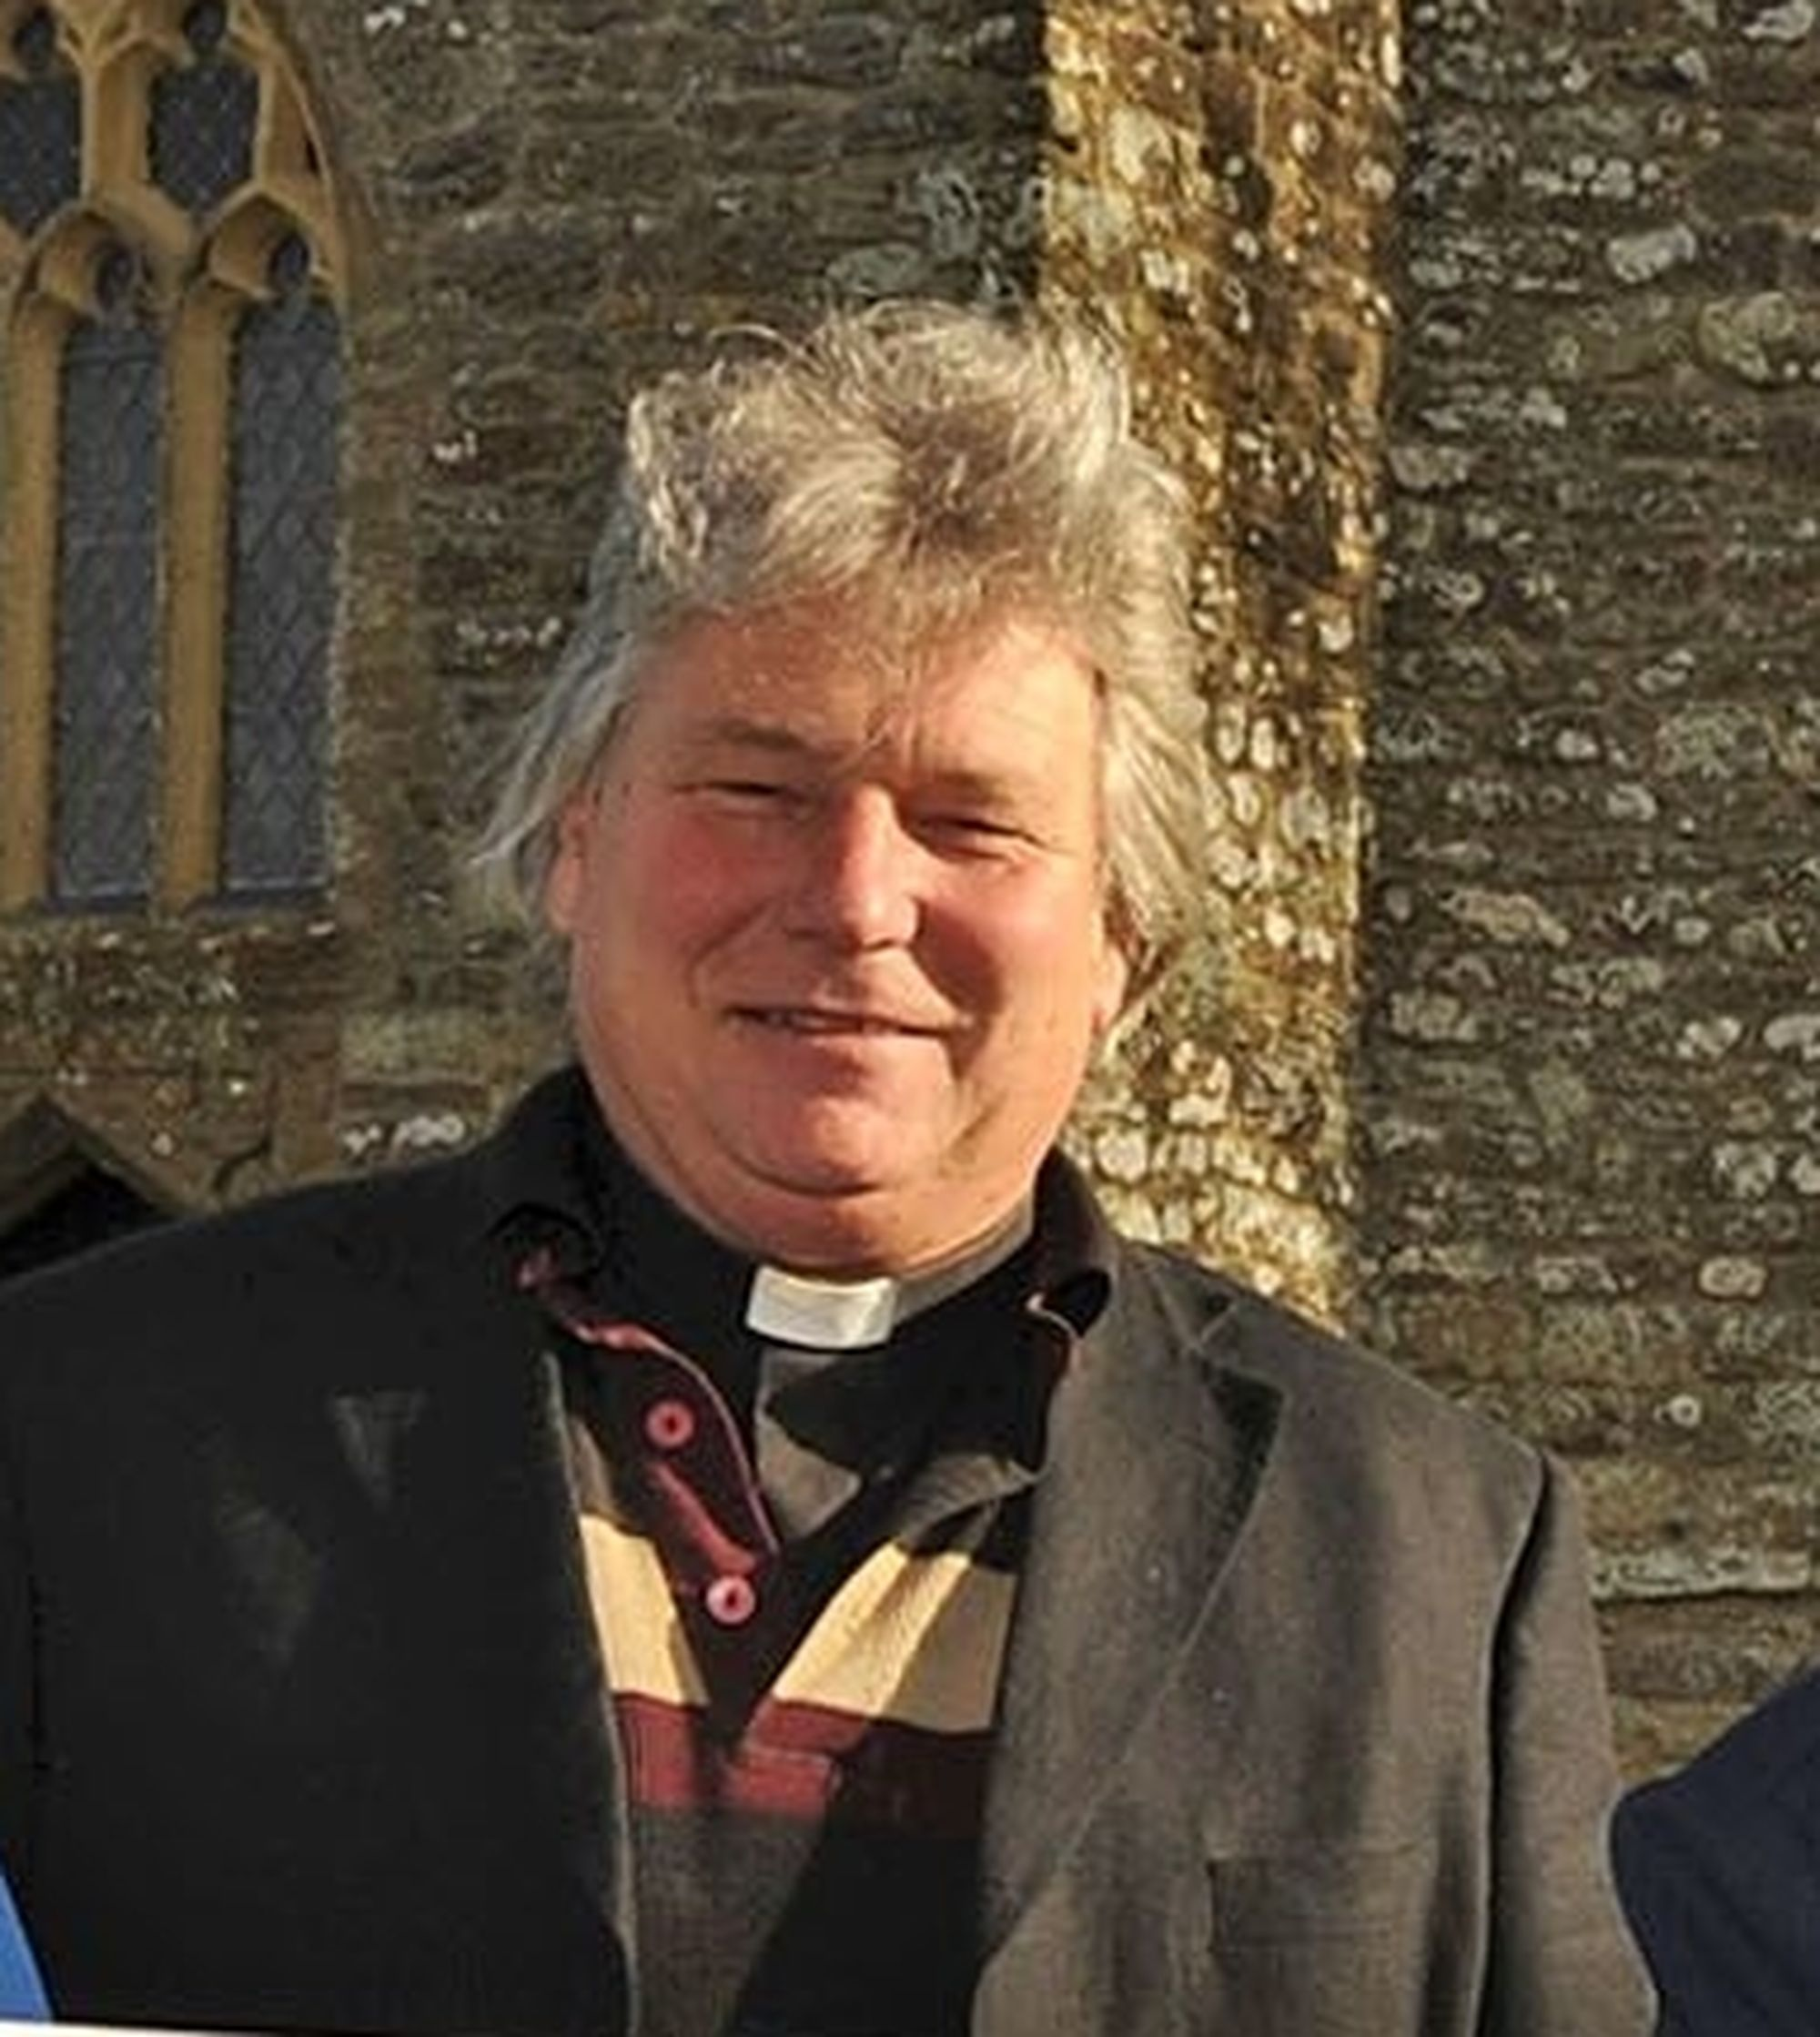 Tragic vicar was rowing from Cornwall on 'spiritual journey' when he died